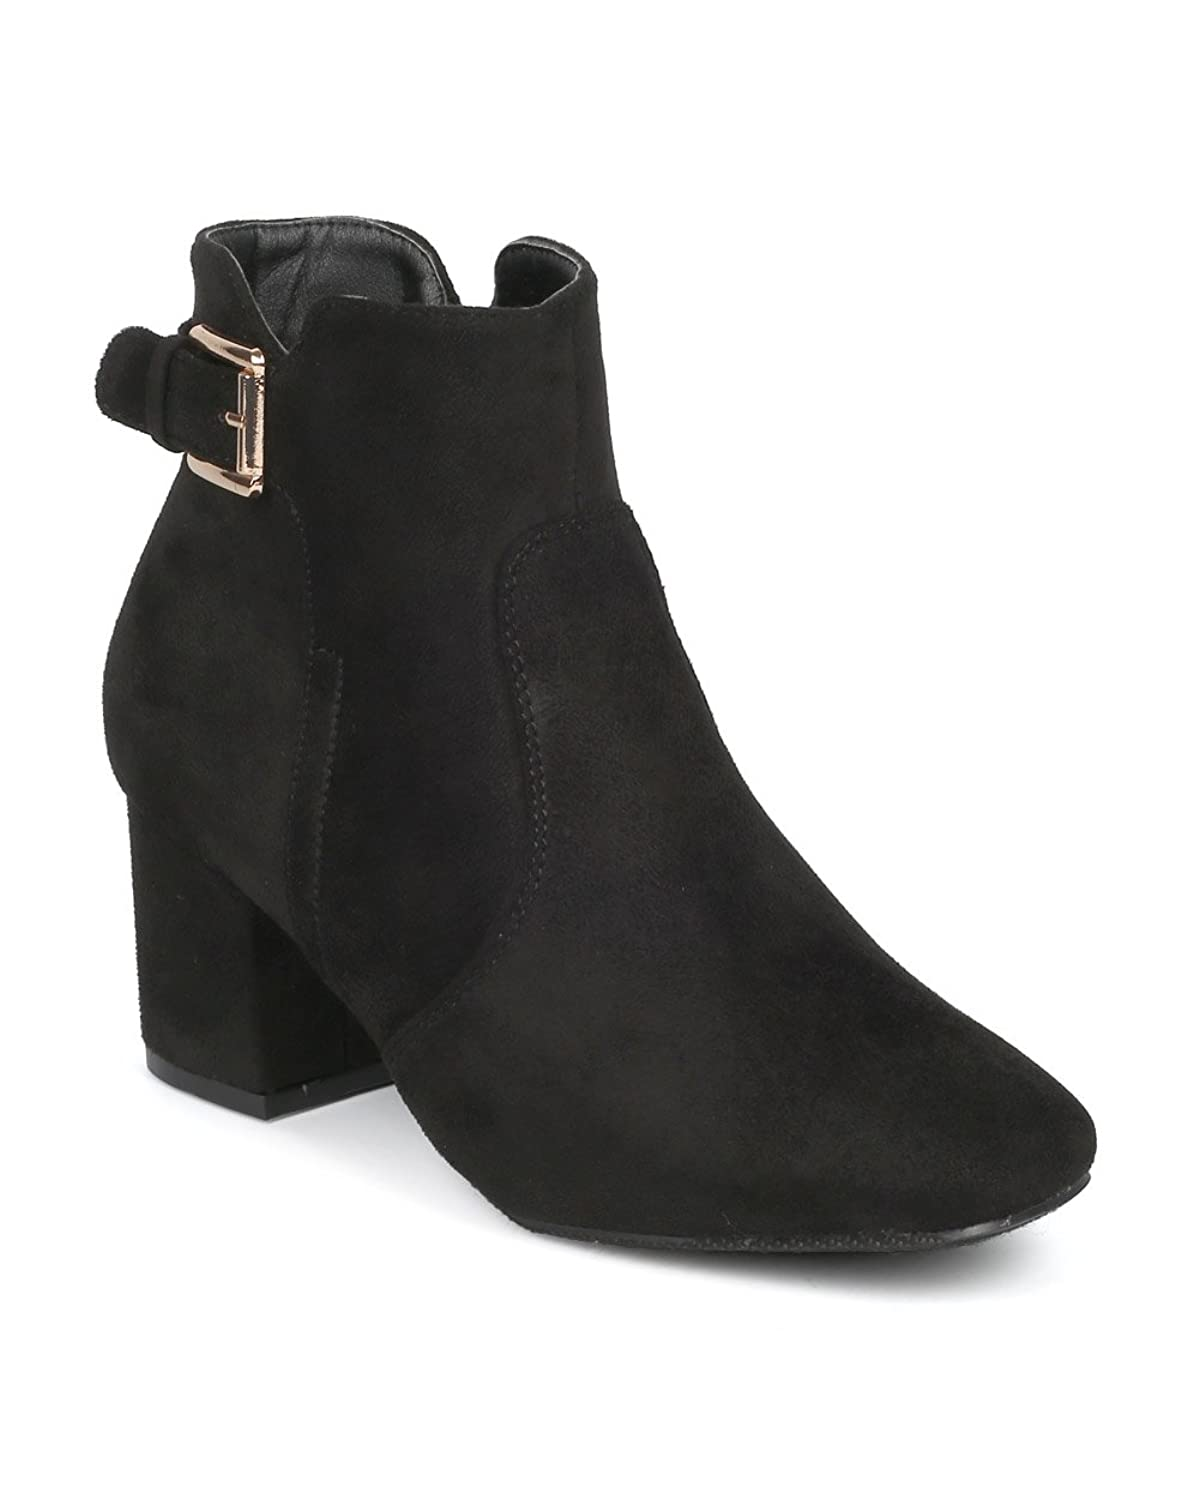 Women's Chunky Block Heel Booties with Adjustable Buckle Strap Cutout Ankle Boots